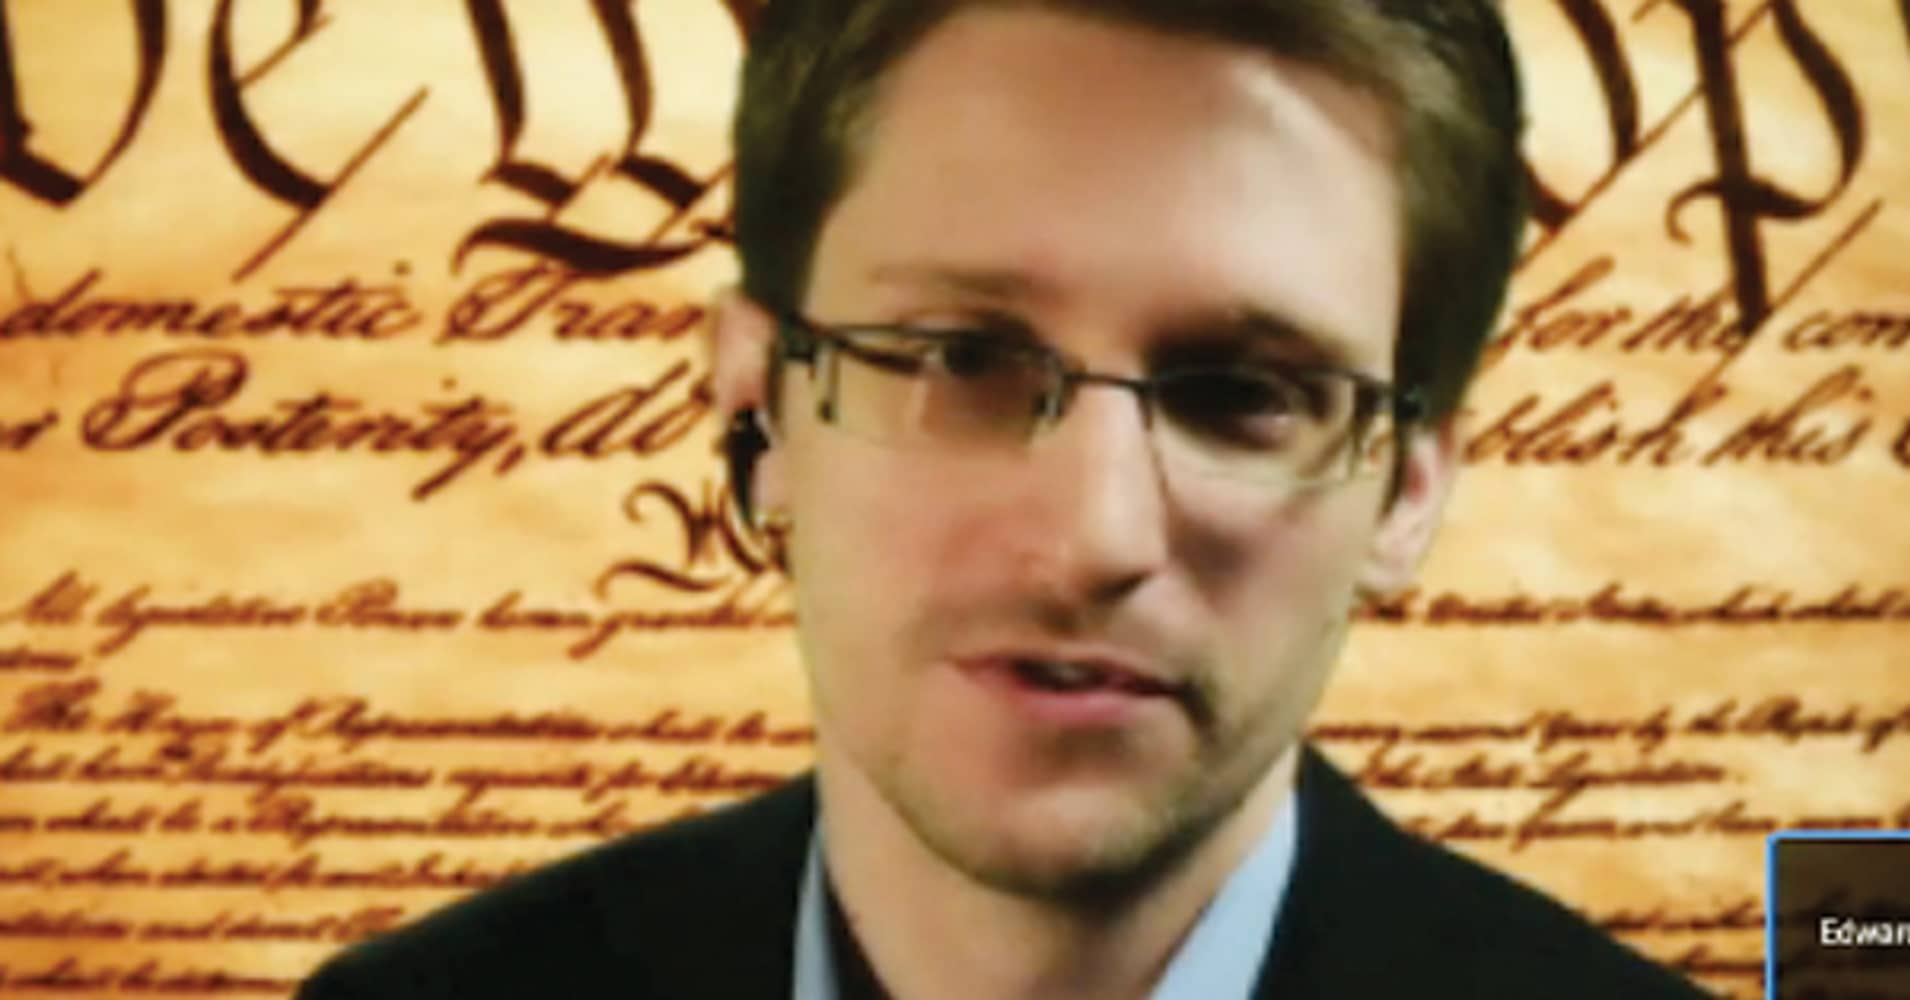 Edward Snowden: US government 'reckless beyond words' after WikiLeaks docs show CIA hacking tools